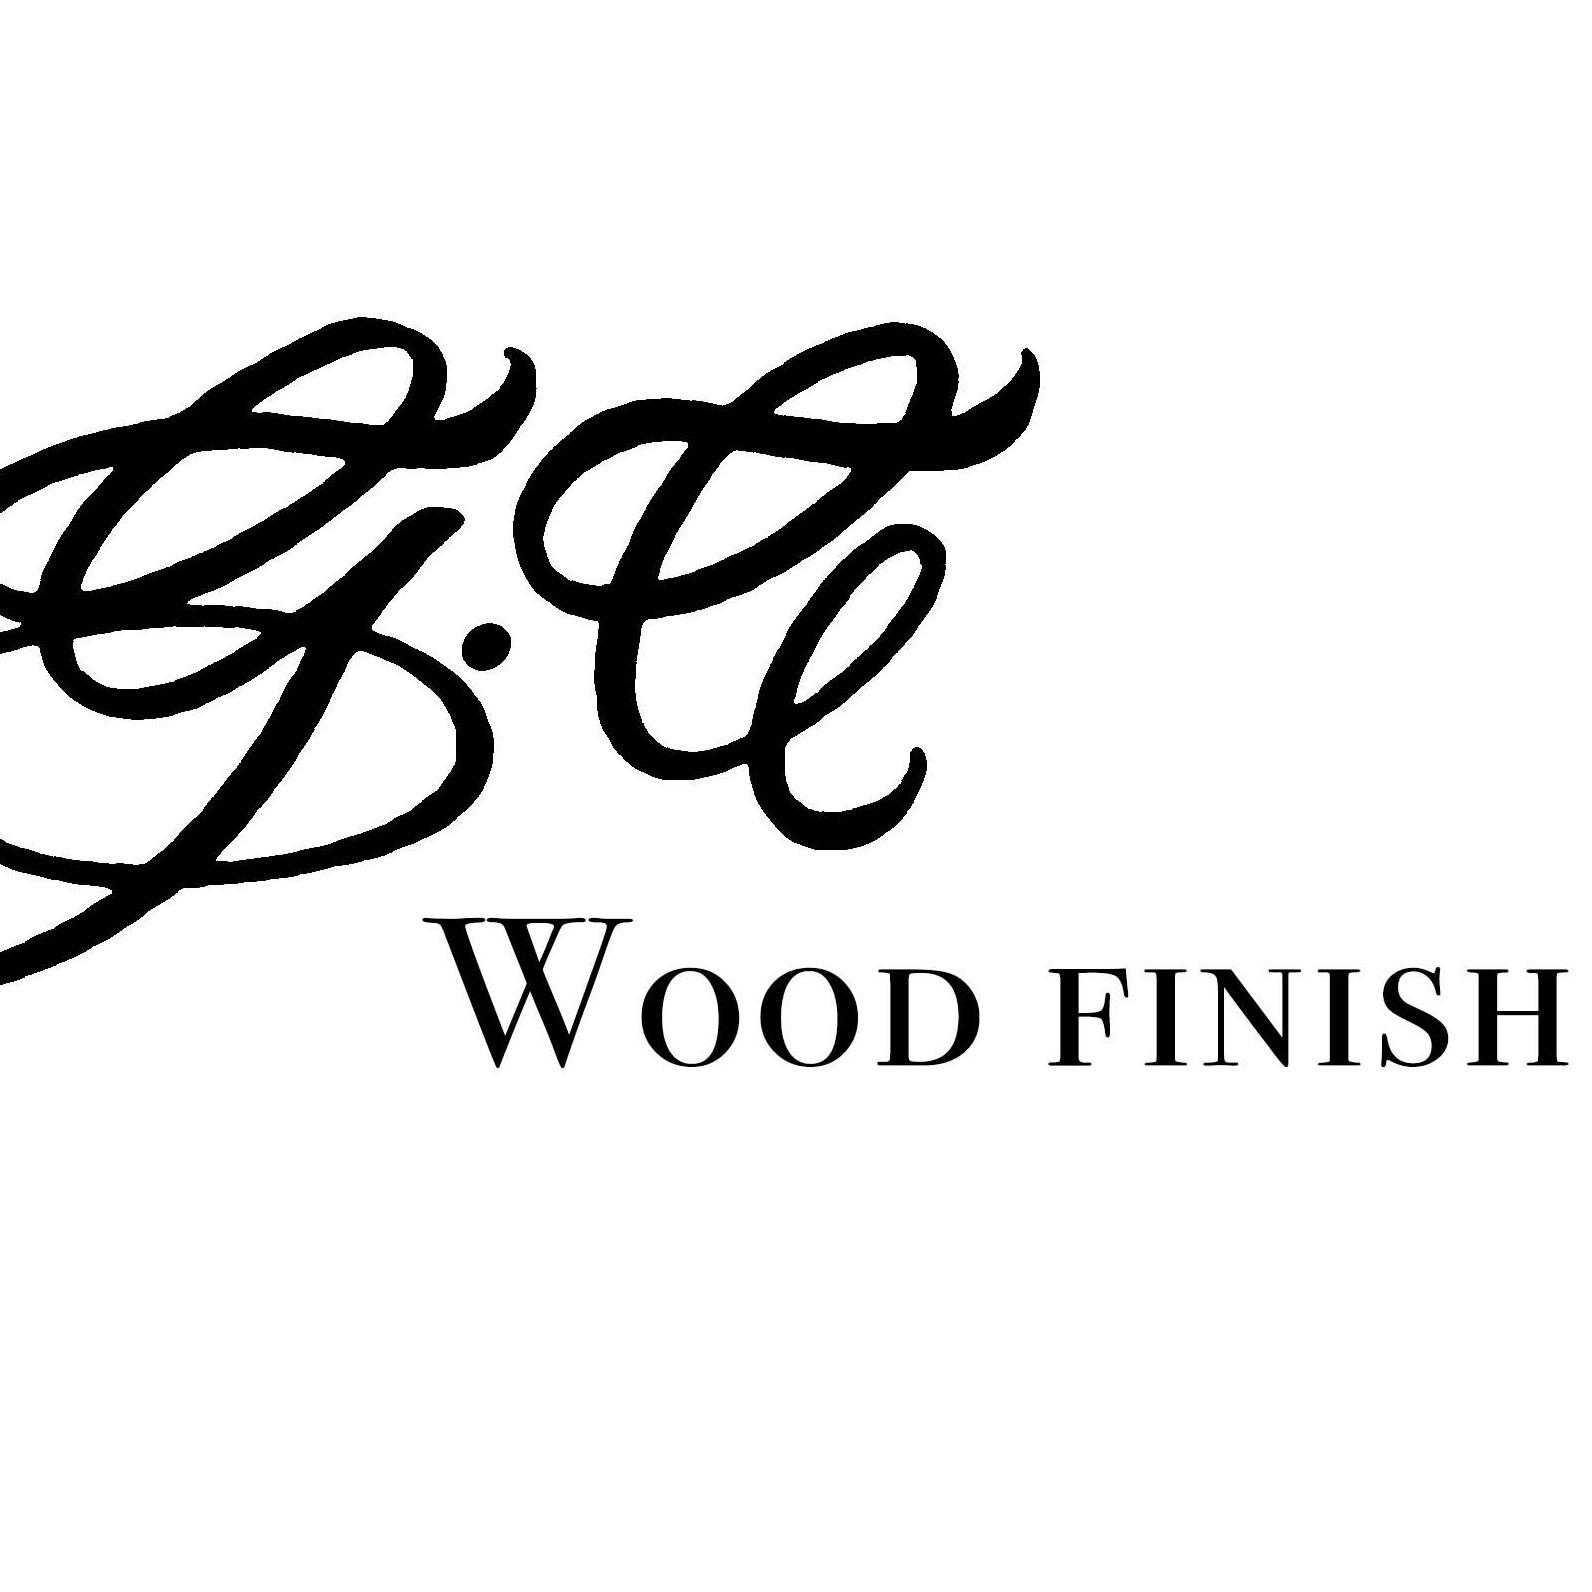 G.C. Wood Finish